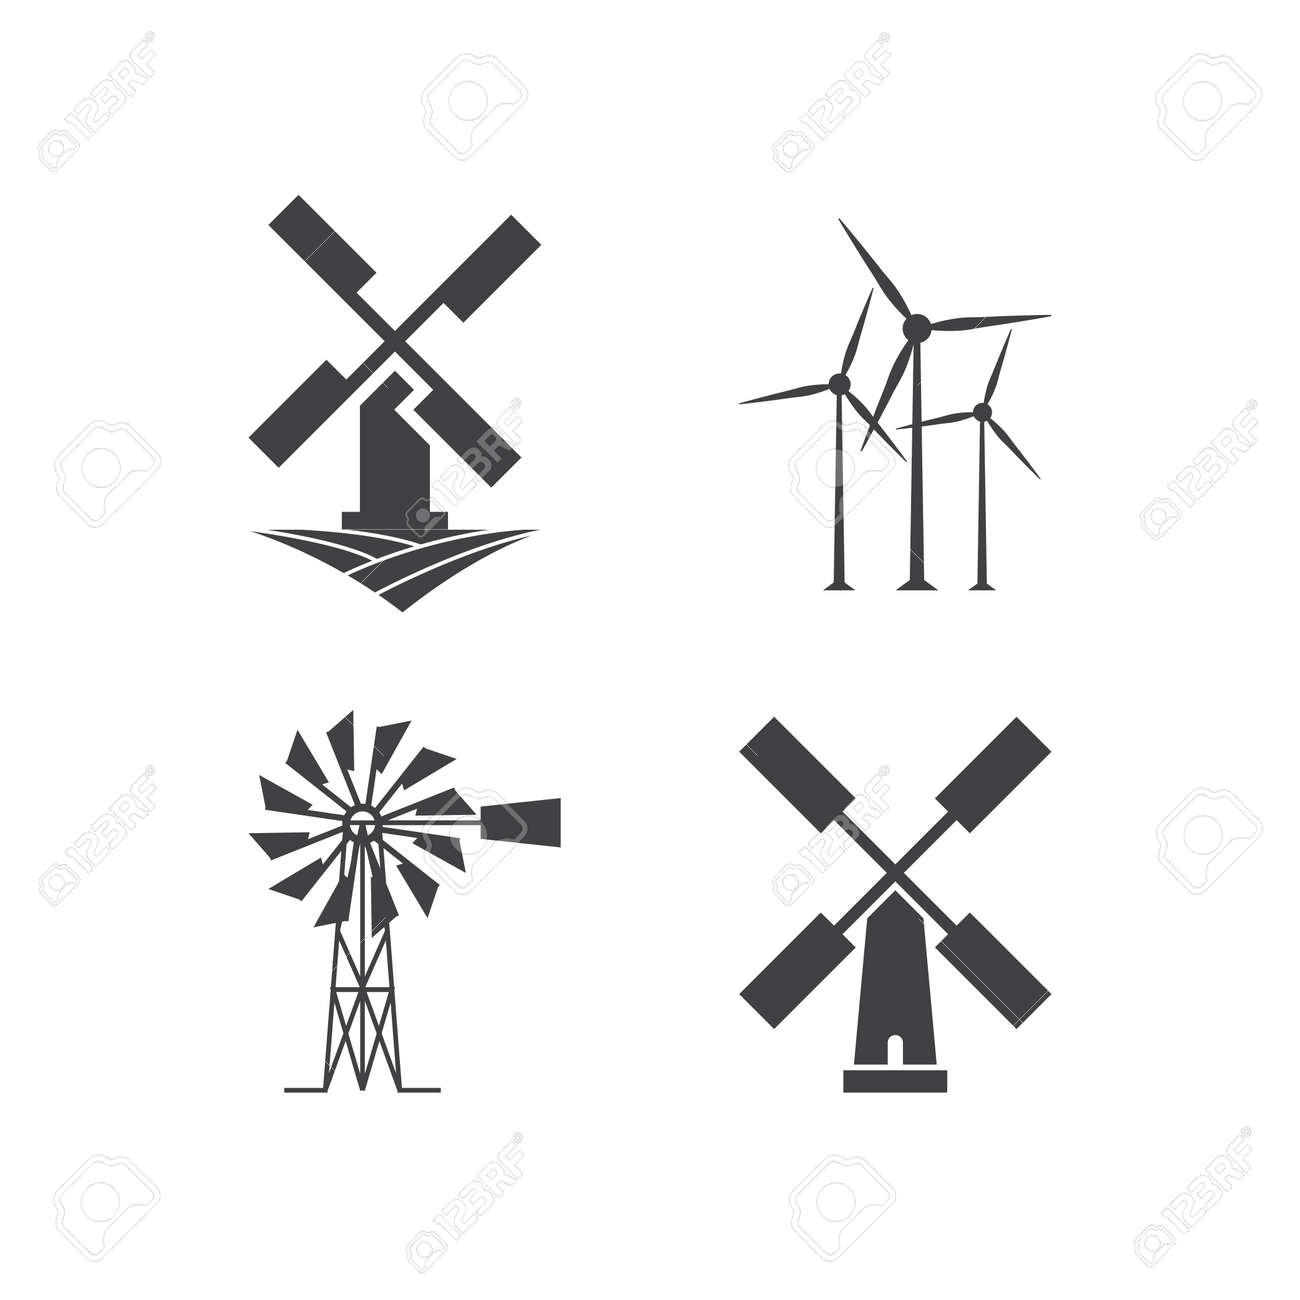 illustration of windmill icon design template royalty free cliparts